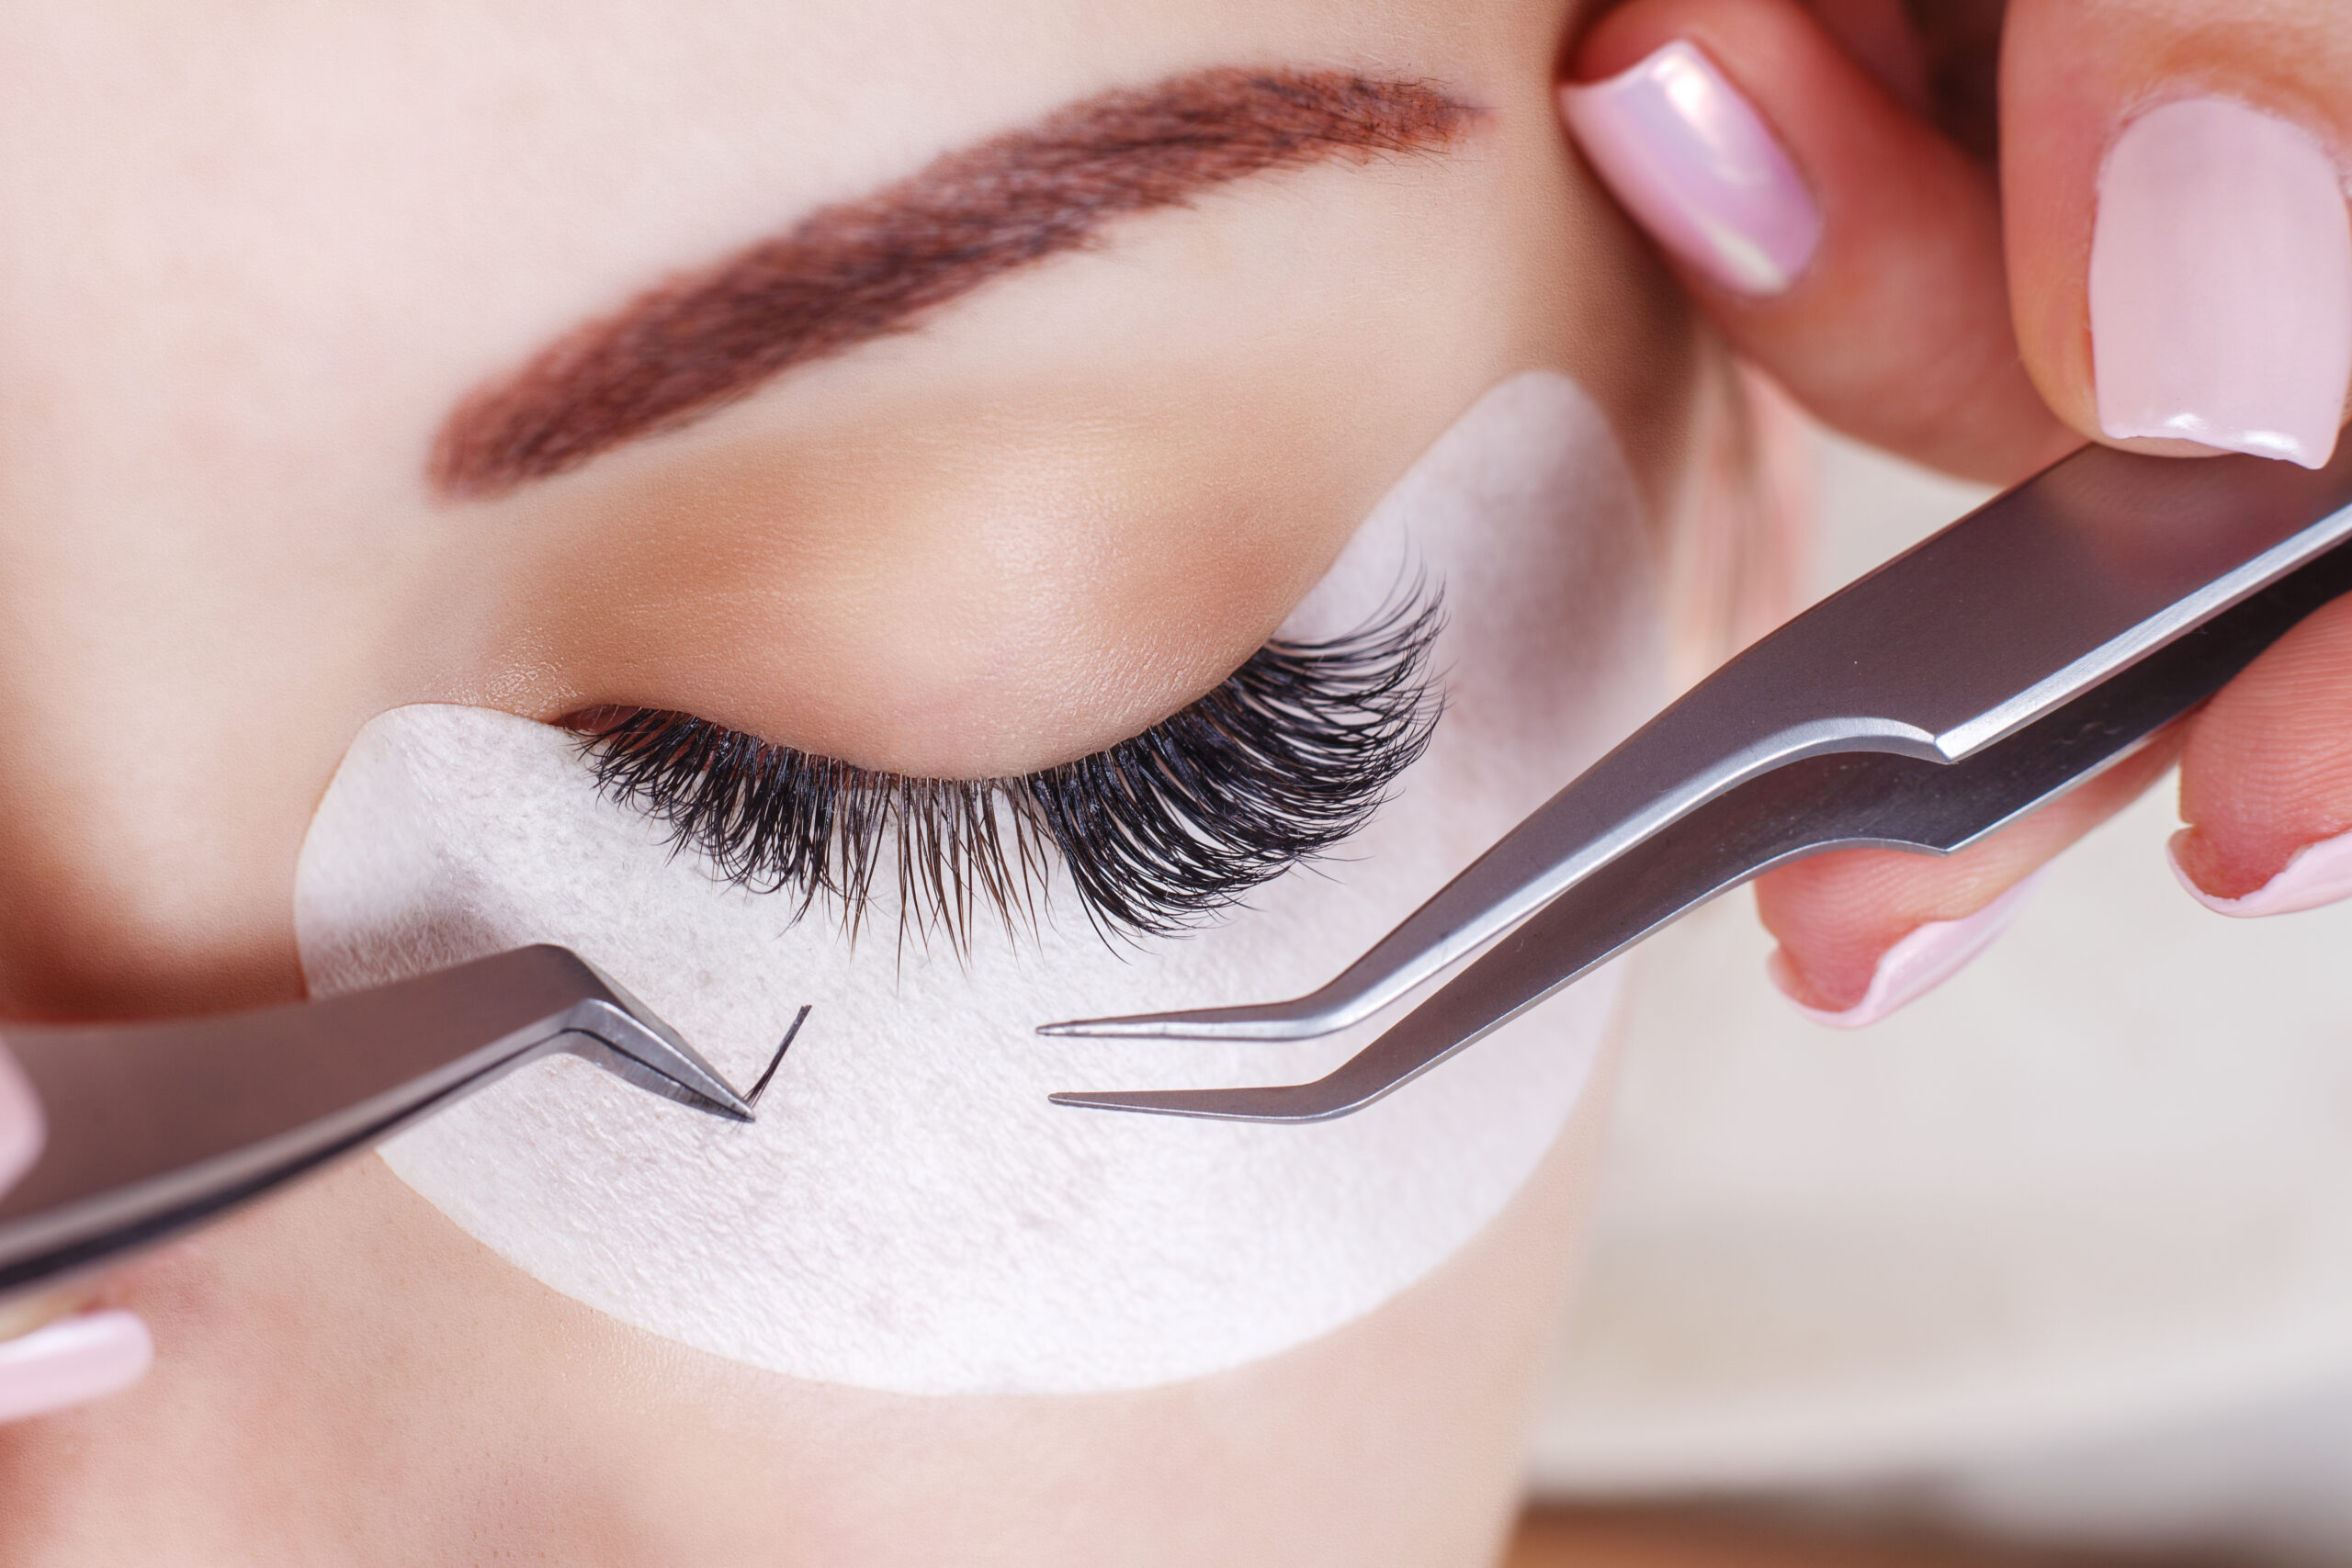 How to Remove Eyelash Extensions (Without Ruining Your Lashes)